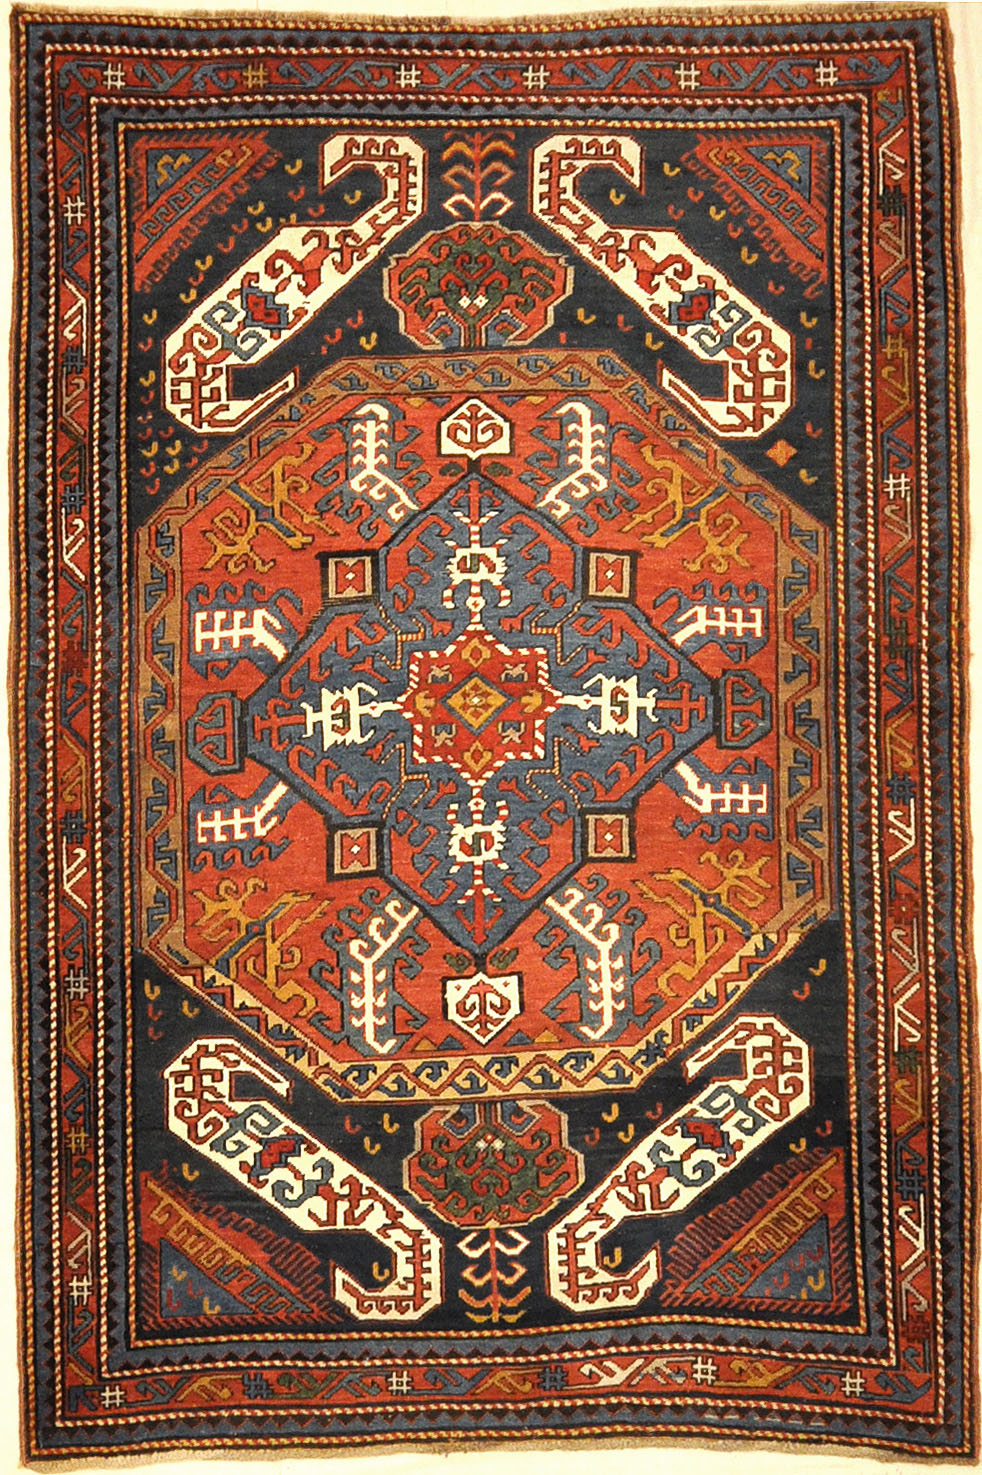 Antique Kazak Kasim Oushak ca 1875. A piece of genuine authentic antique woven carpet art sold by the Santa Barbara Design Center, Rugs and More.